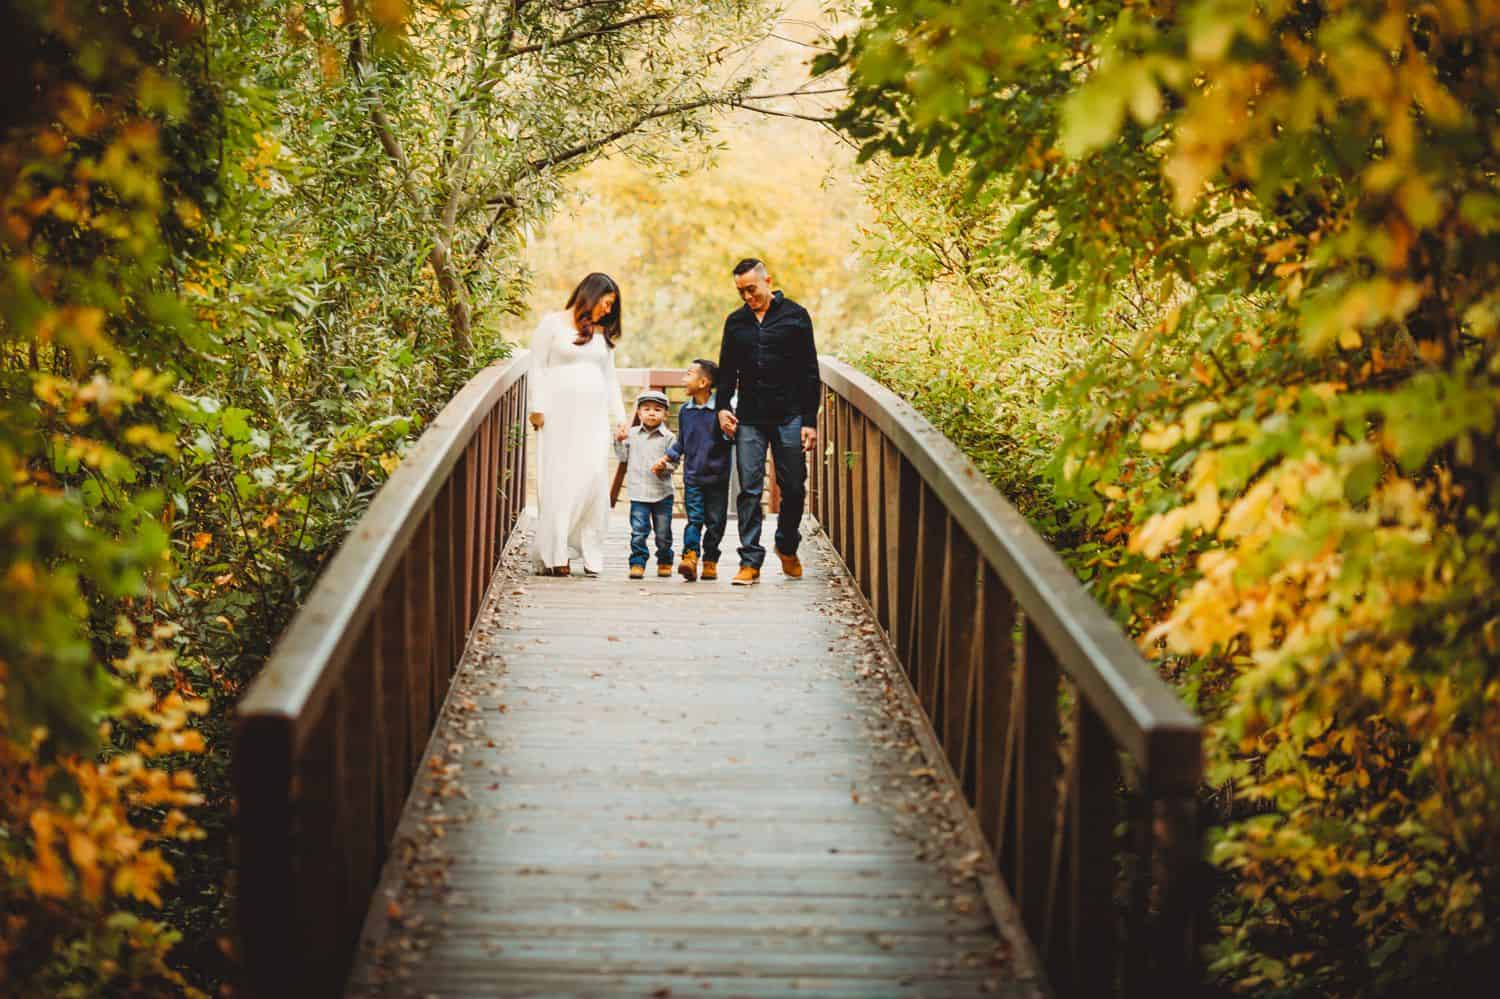 A pregnant mother in a flowing white dress walks down a forest boardwalk with her husband and two young sons. They are surrounded by fall colors.